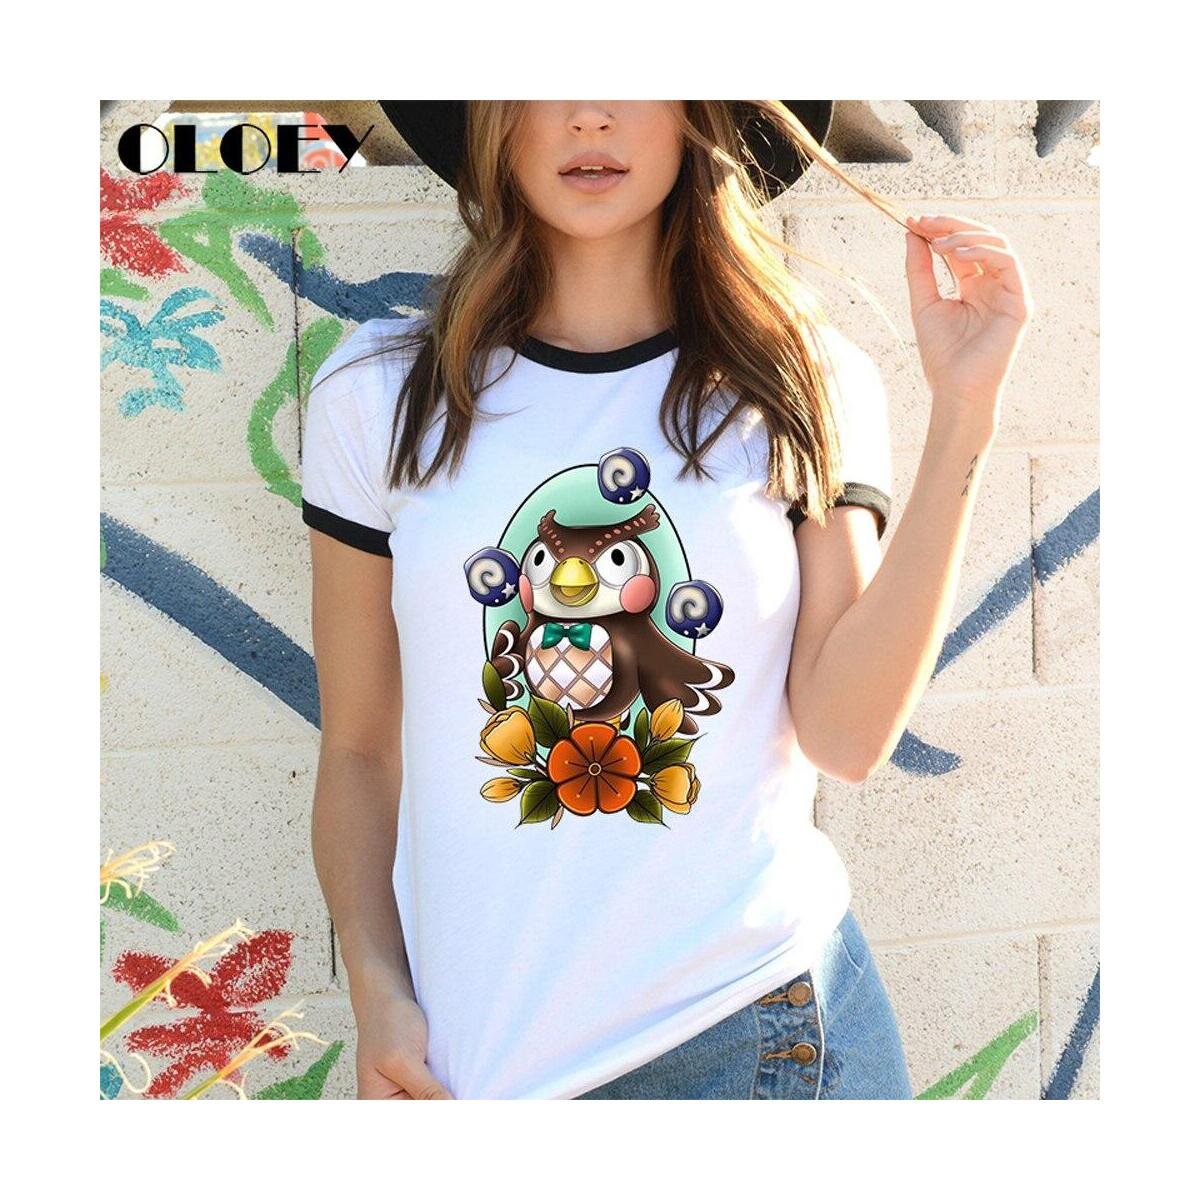 Animal Crossing Characters Tattoo Style Shirts, Resetti / L